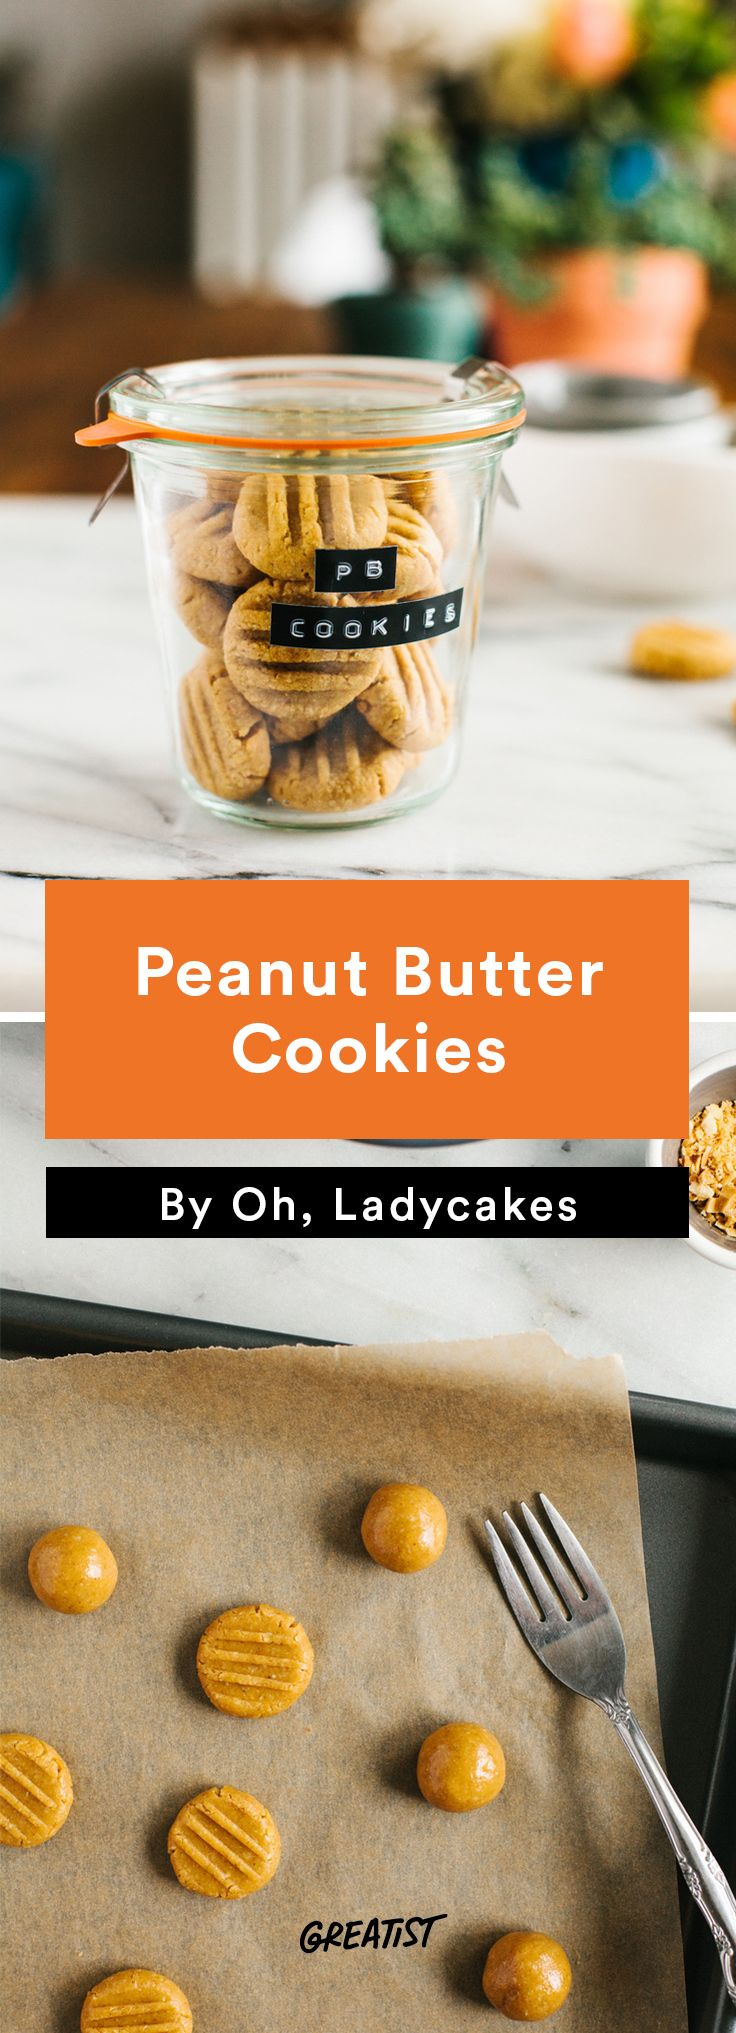 3. Peanut Butter Cookies #Nondairy #dessert #recipes http://greatist.com/eat/non-dairy-dessert-recipes